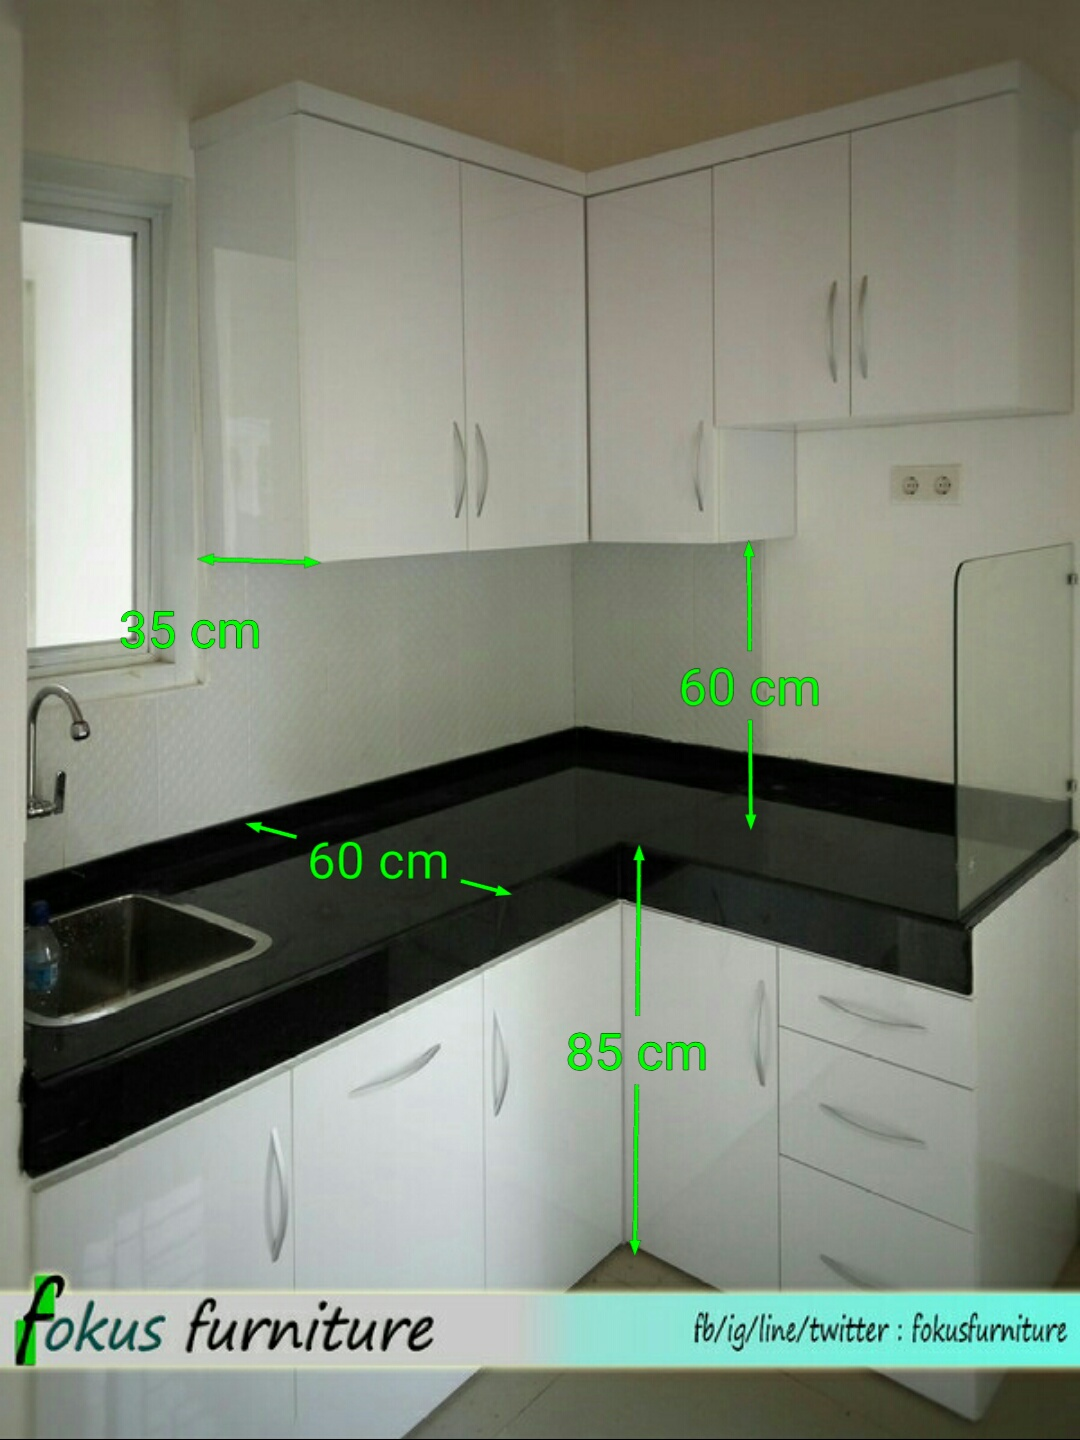 Ukuran kabinet related keywords ukuran kabinet long tail for Kitchen set olympic harga